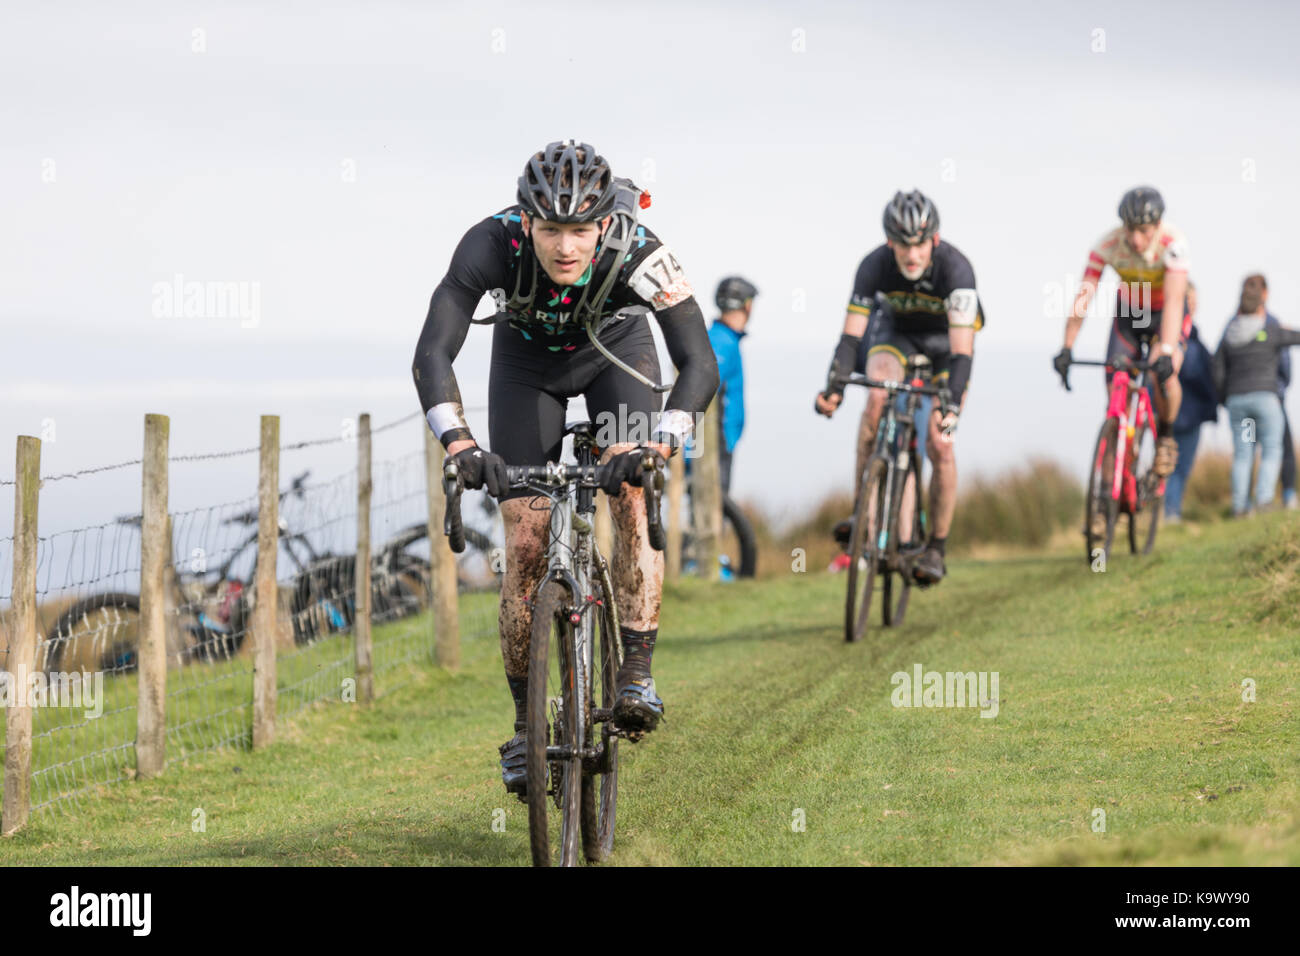 55th Annual 3 Peaks Cyclo-Cross, Ingleton Yorkshire Dales,  UK. 24th September 2017. Ruairi Revell descends Inglebrough - Stock Image